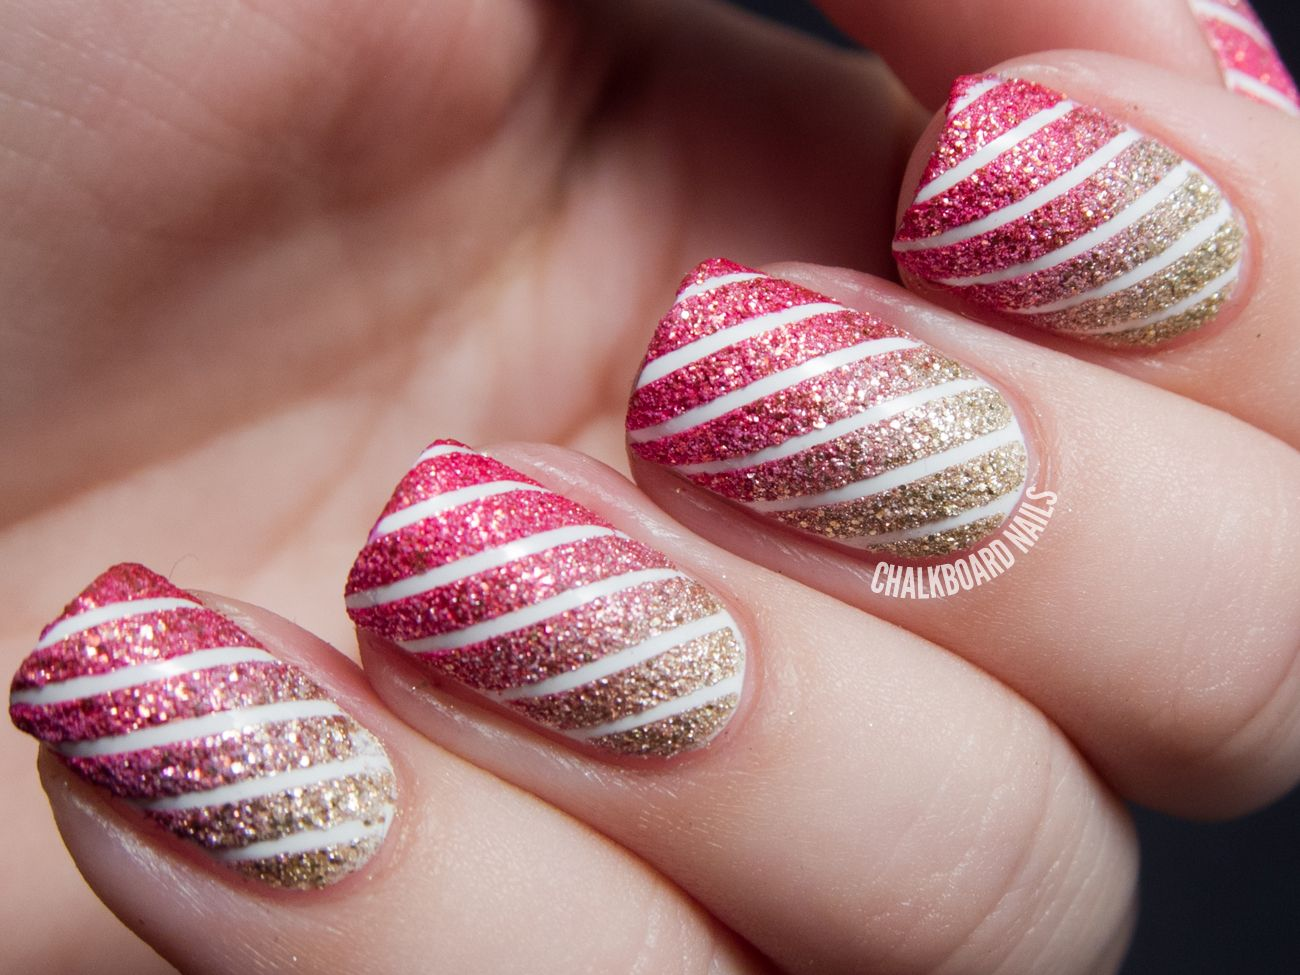 Blogging for a Cause: Chalkboard Nails for Polished Girlz : work / play / polish